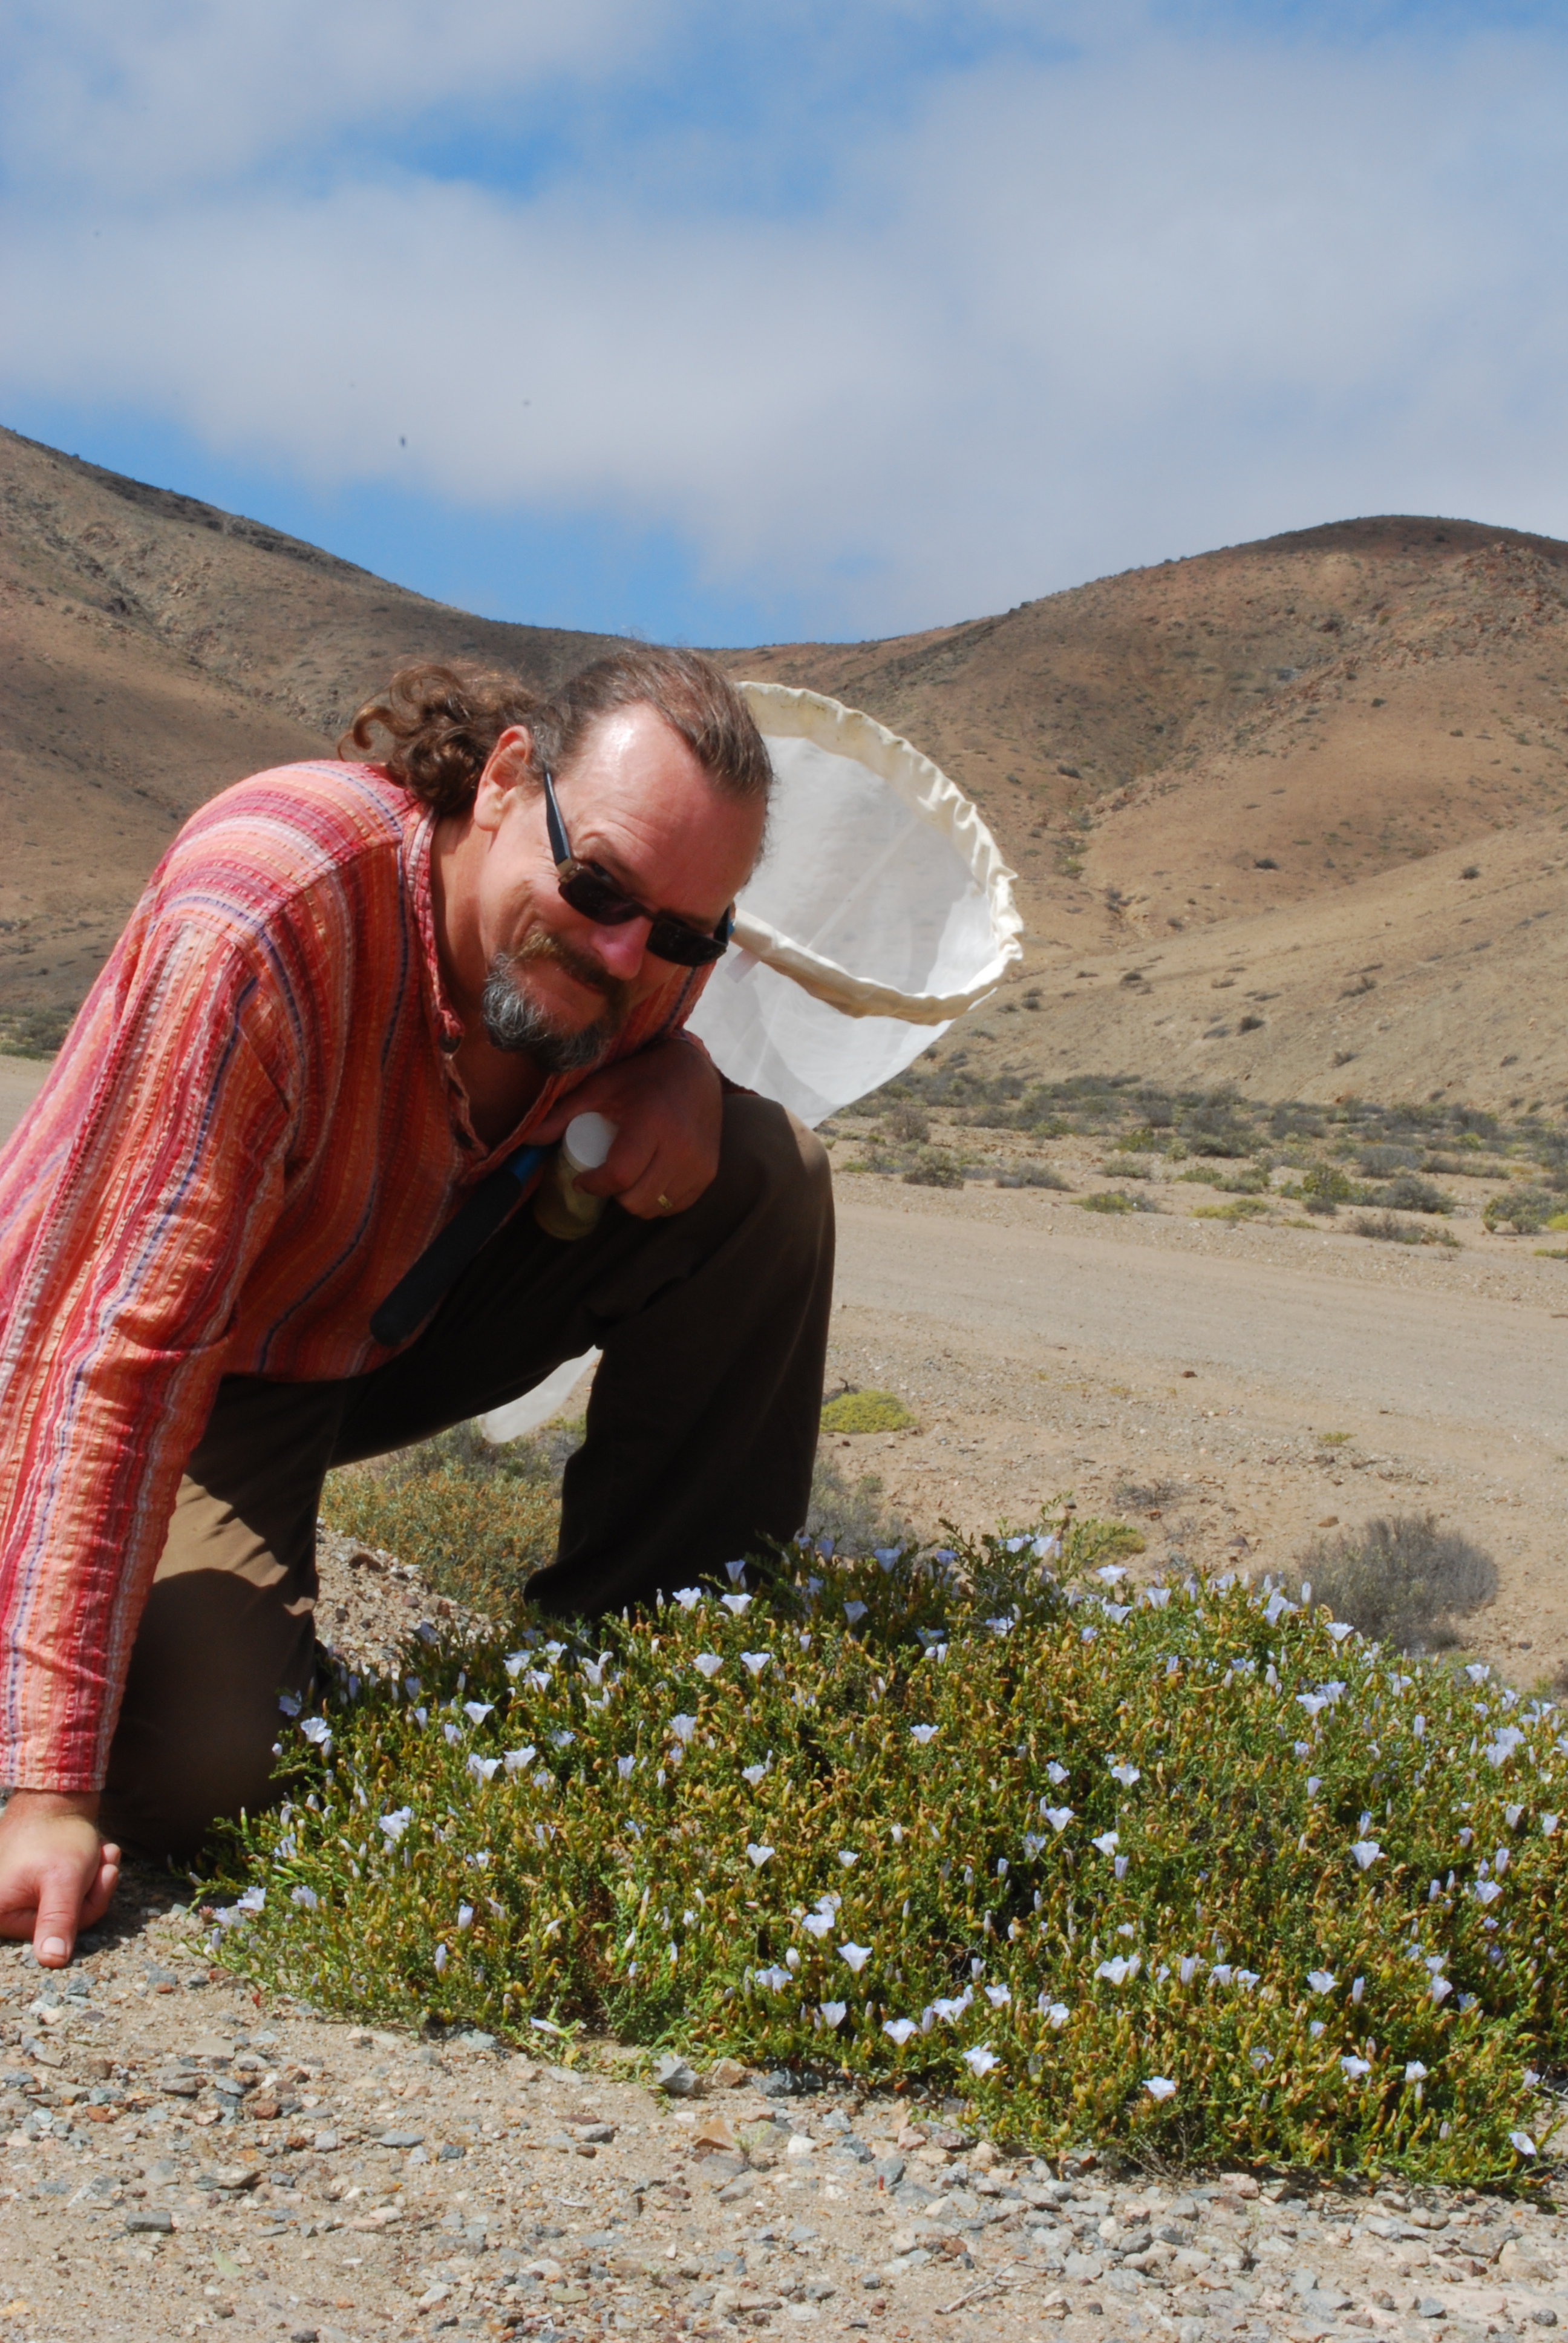 [Laurence in the field (Chile)]